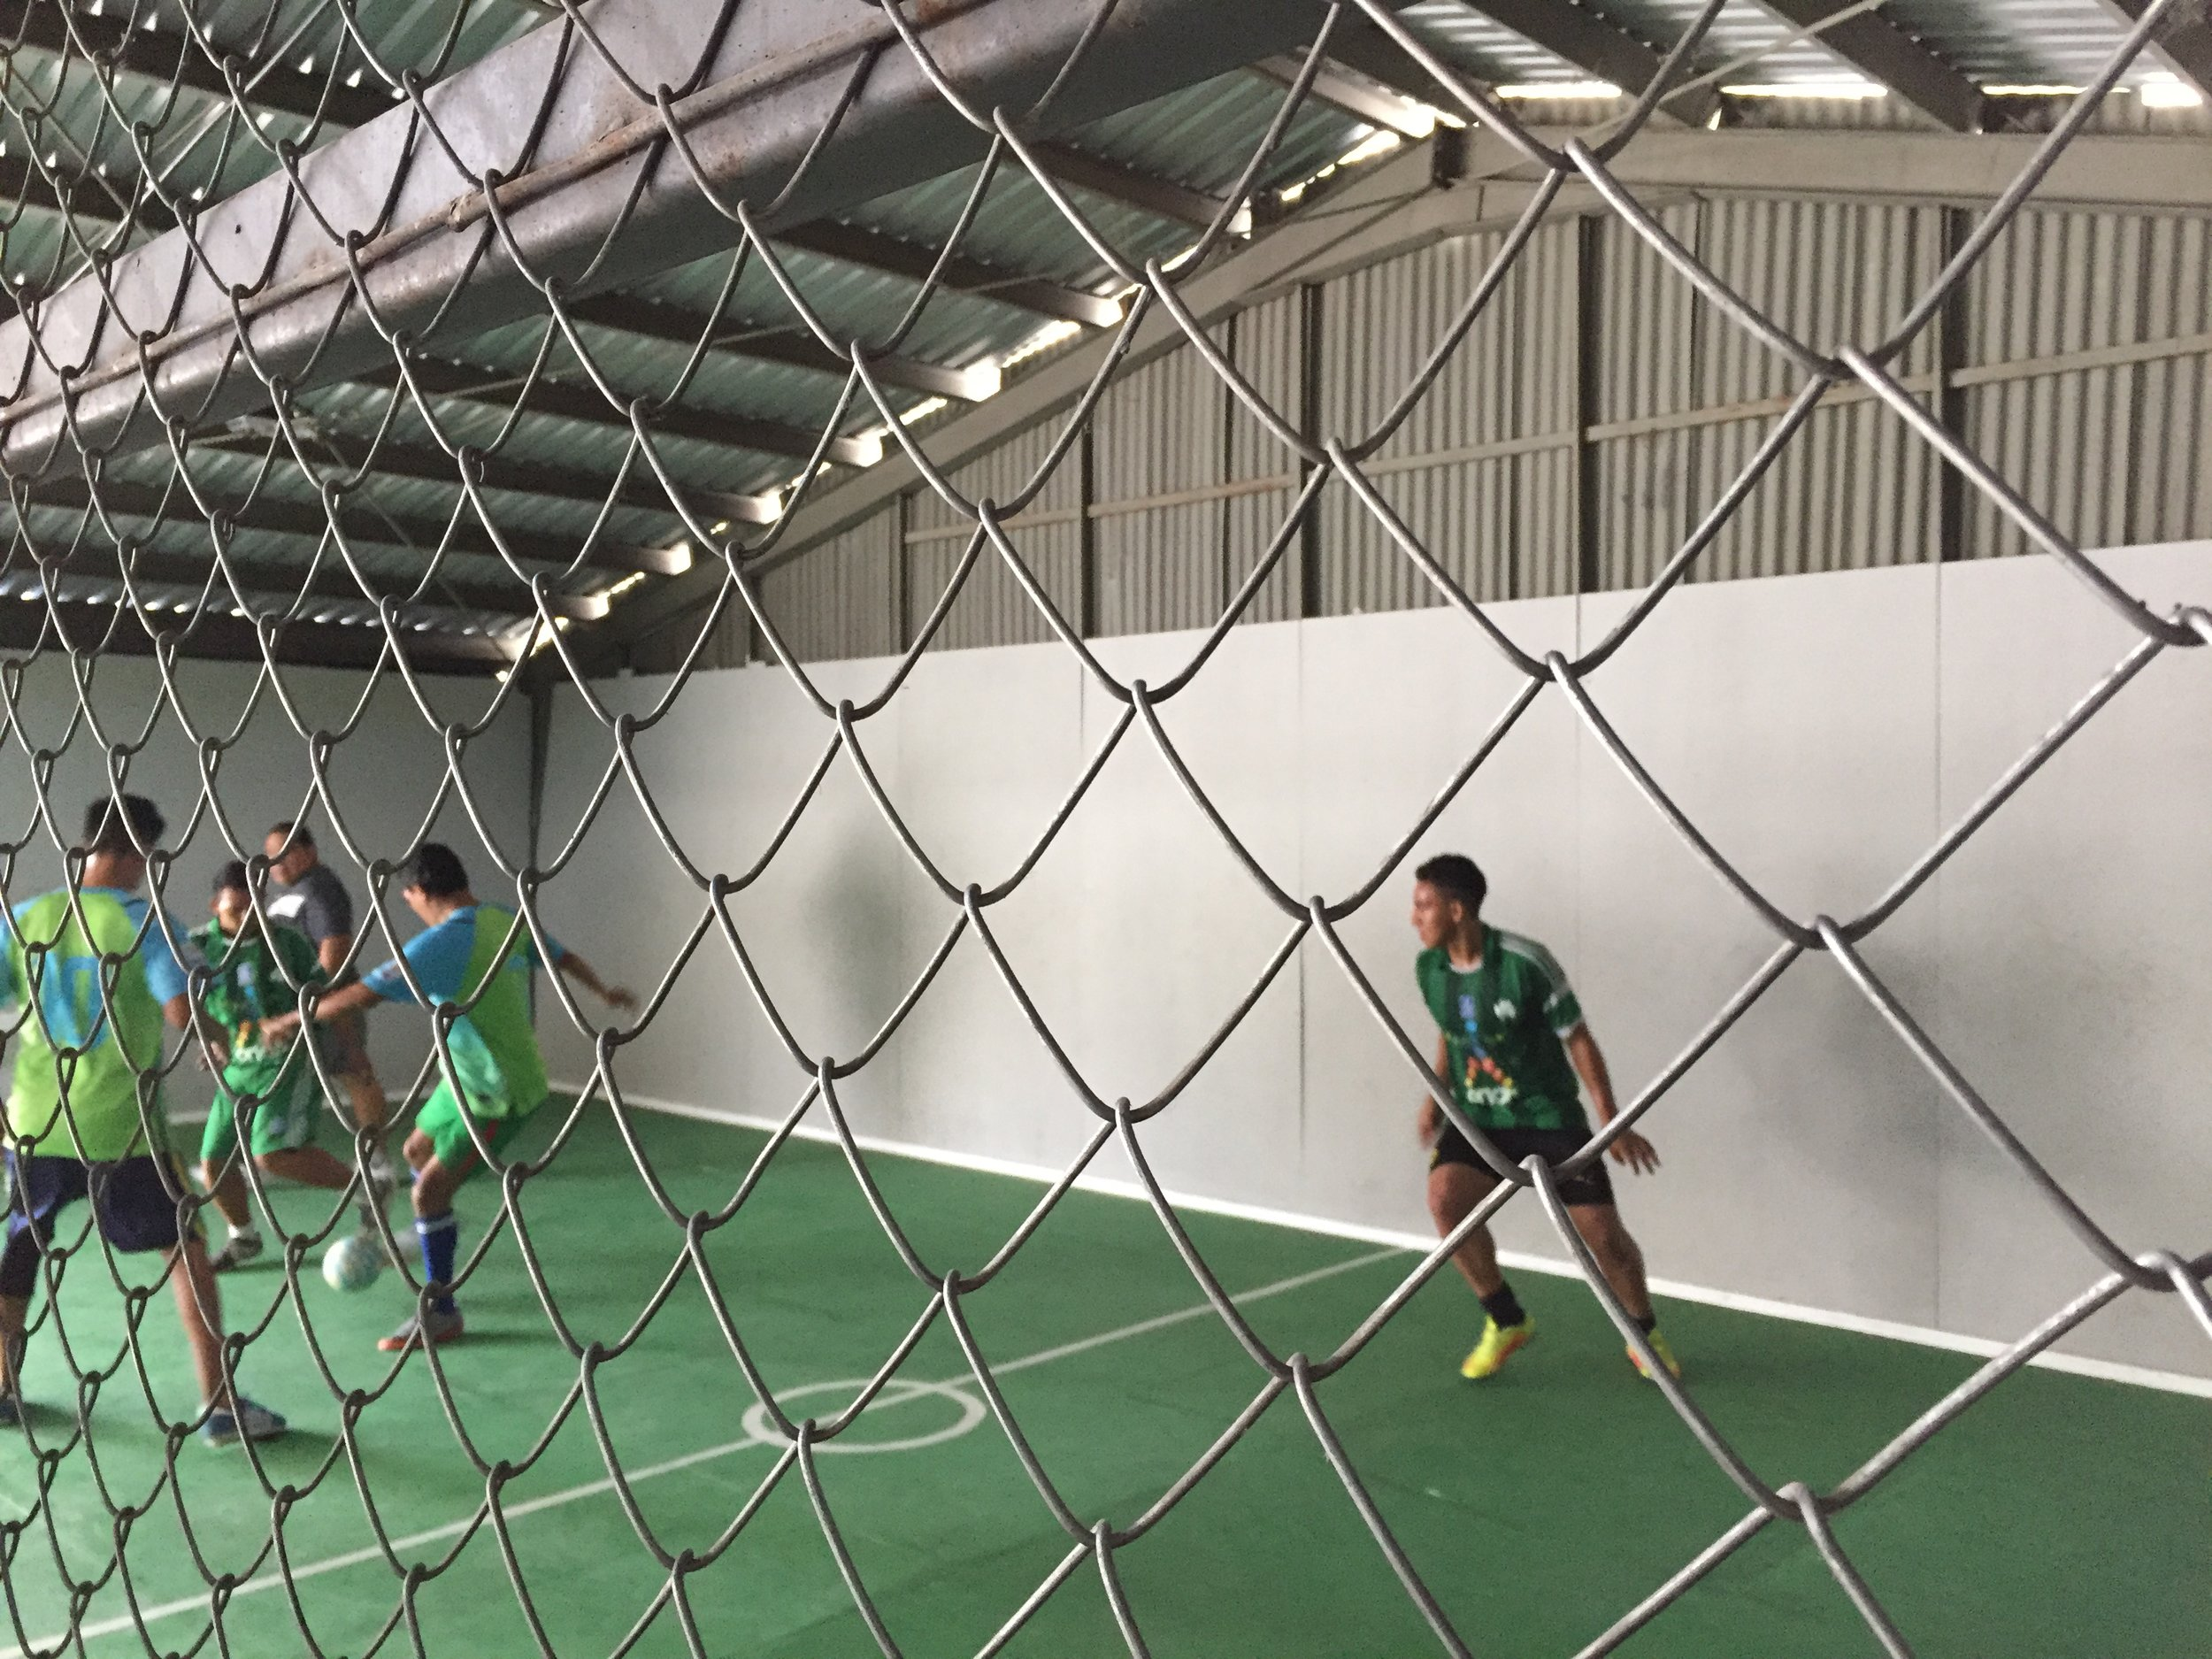 Two teams playing in the soccer tournament on Monday morning